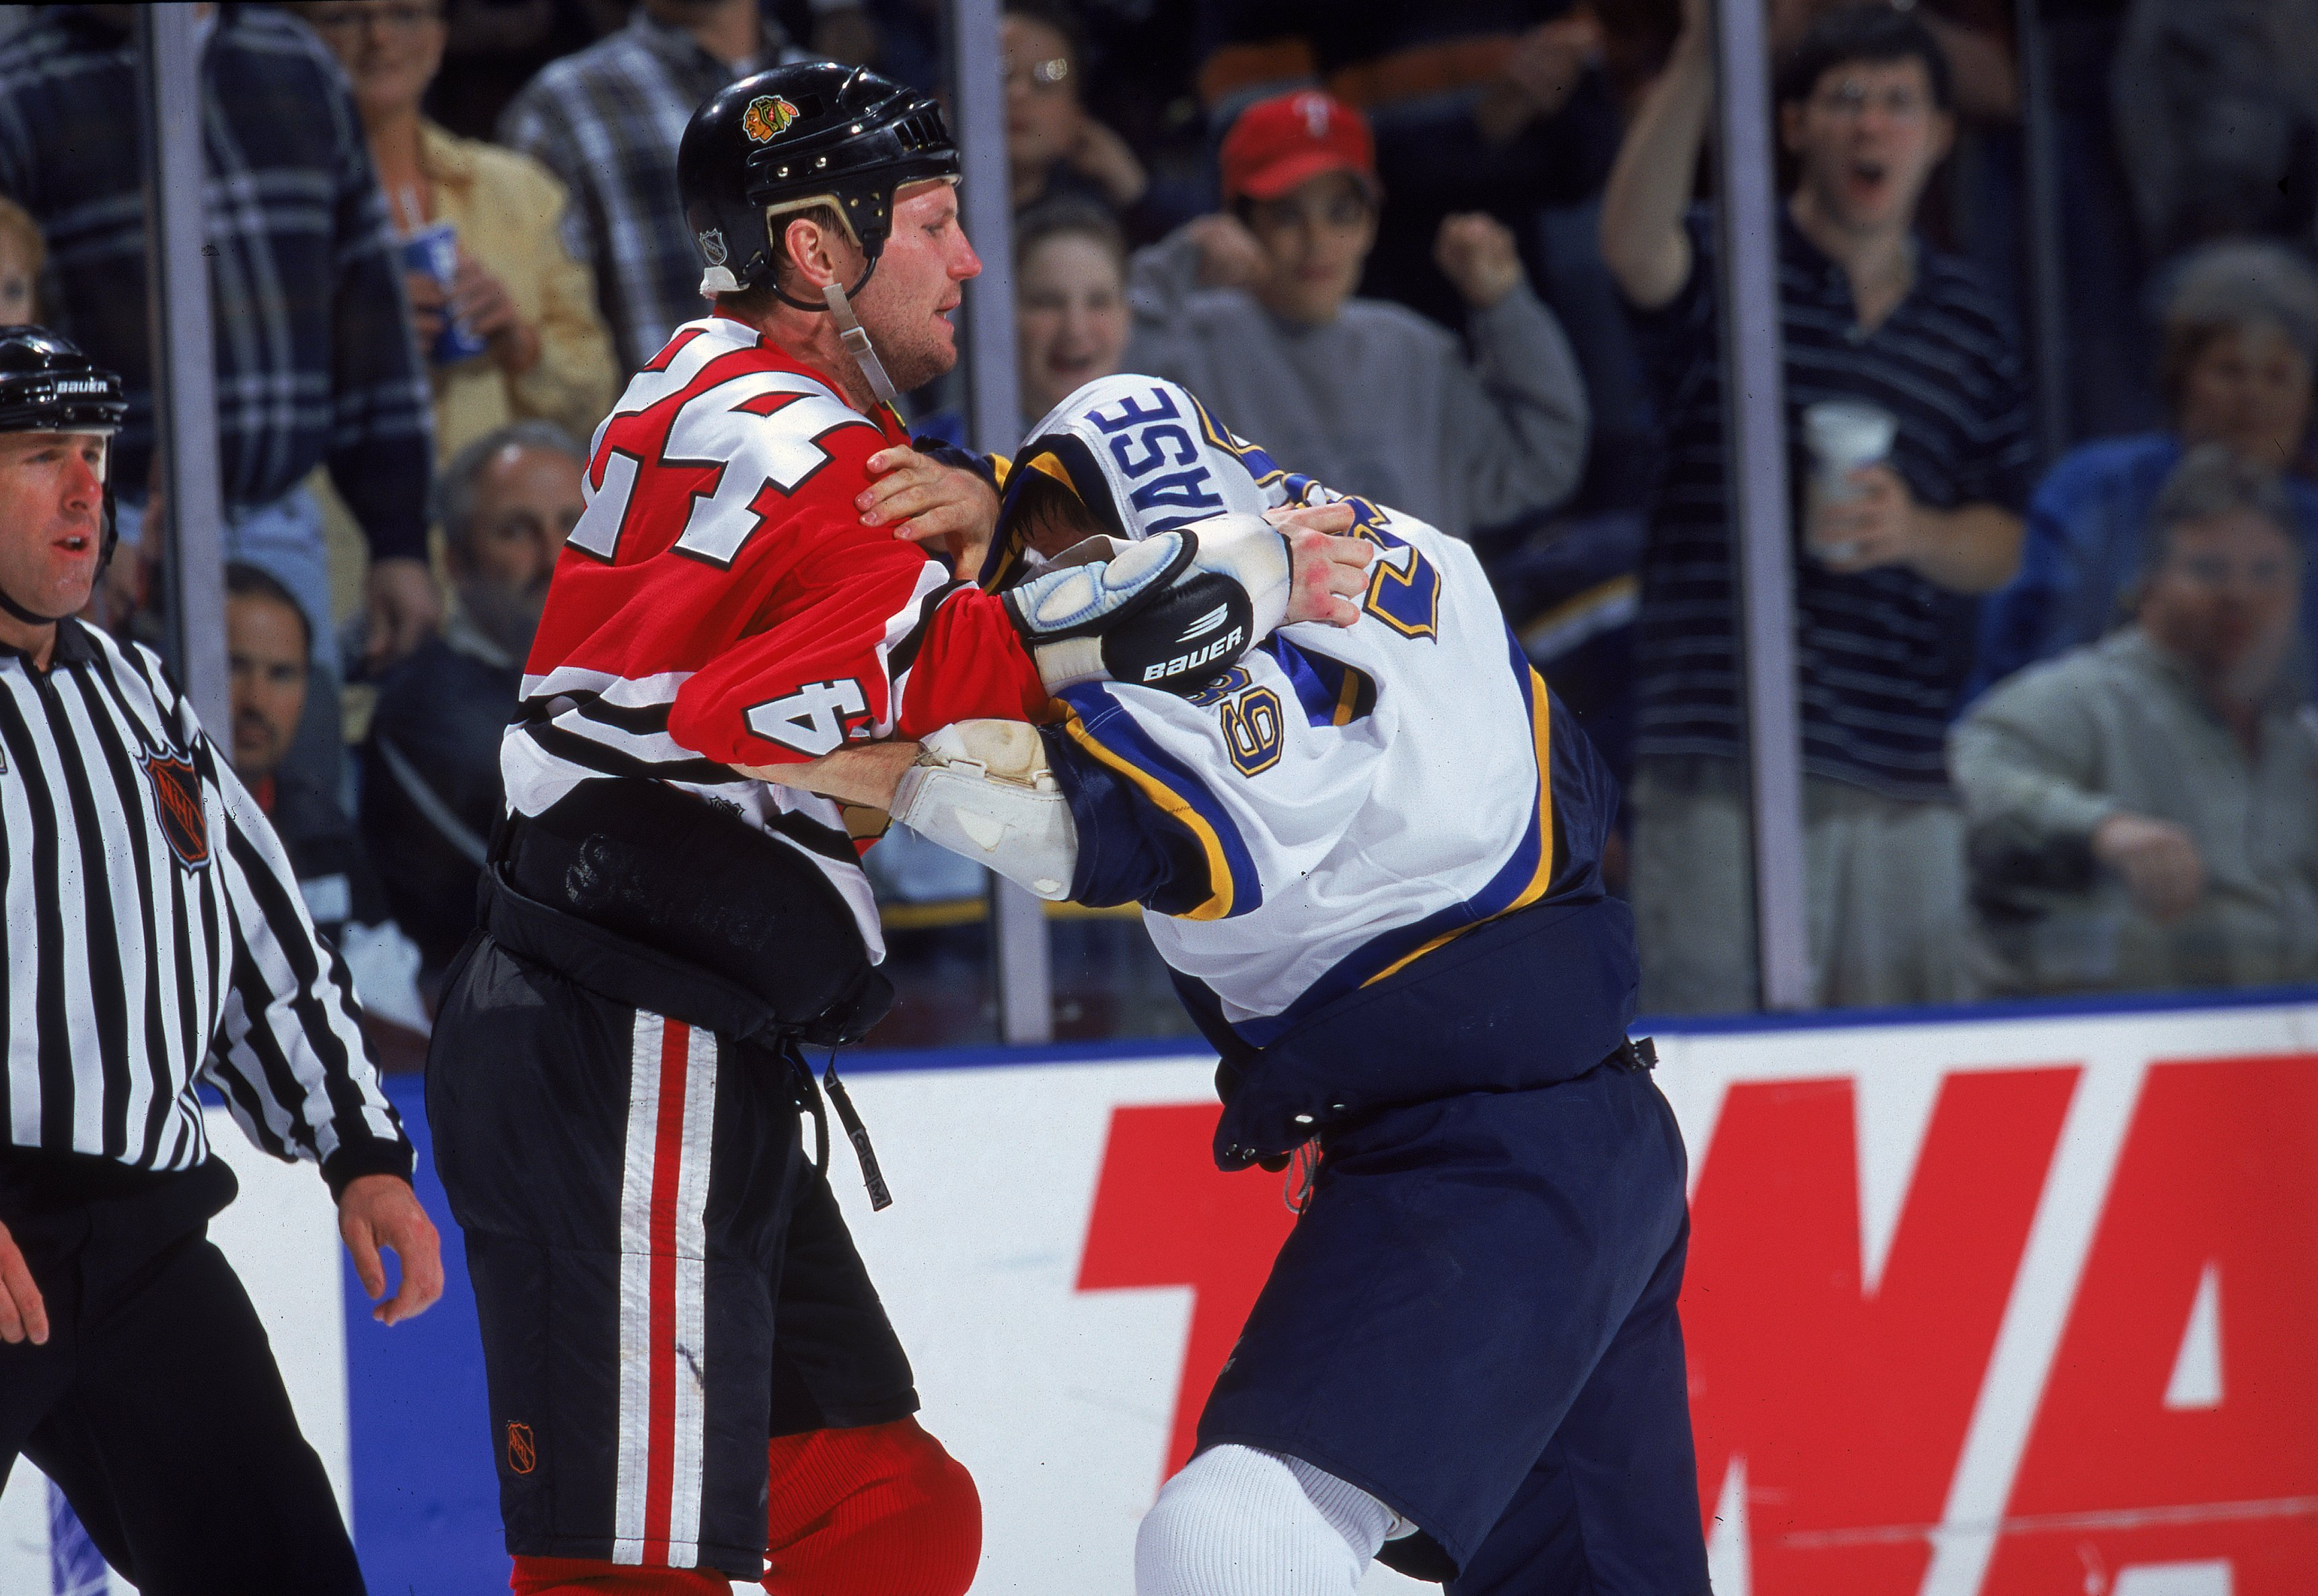 7 Apr 2000  Bob Probert  24 of the Chicago Blackhawks fights with Kelly  Chase 0724ccc27